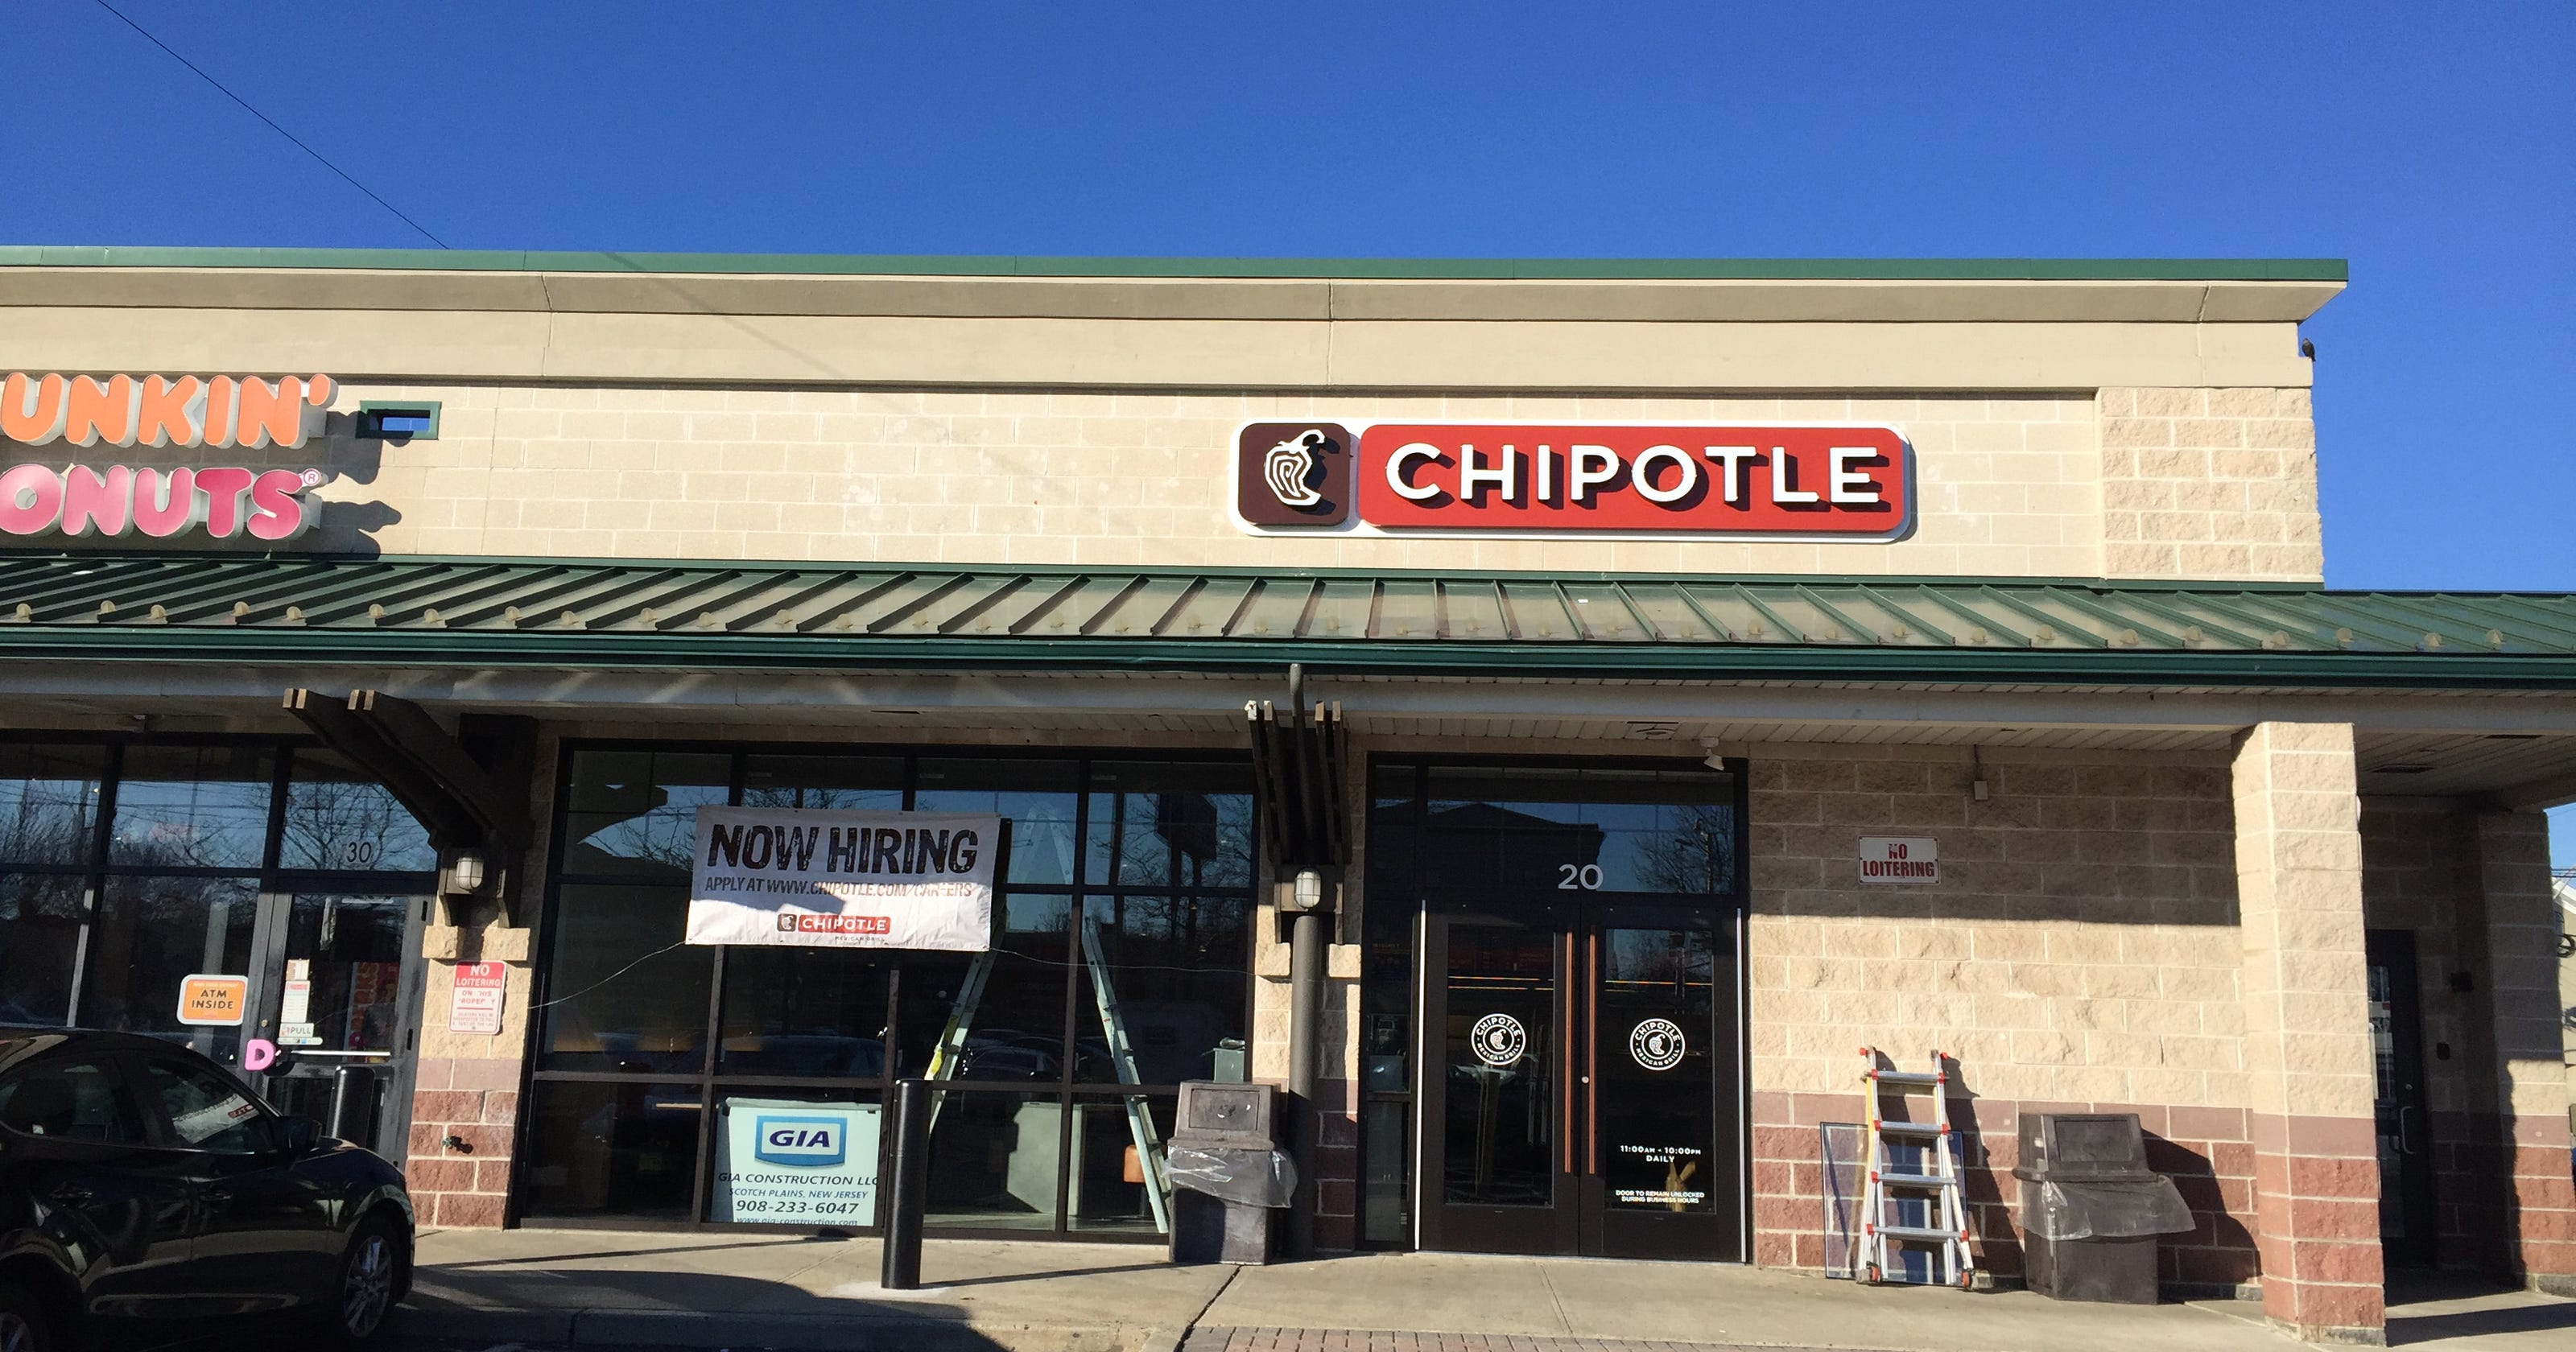 Email Chipotle And Get Free Food